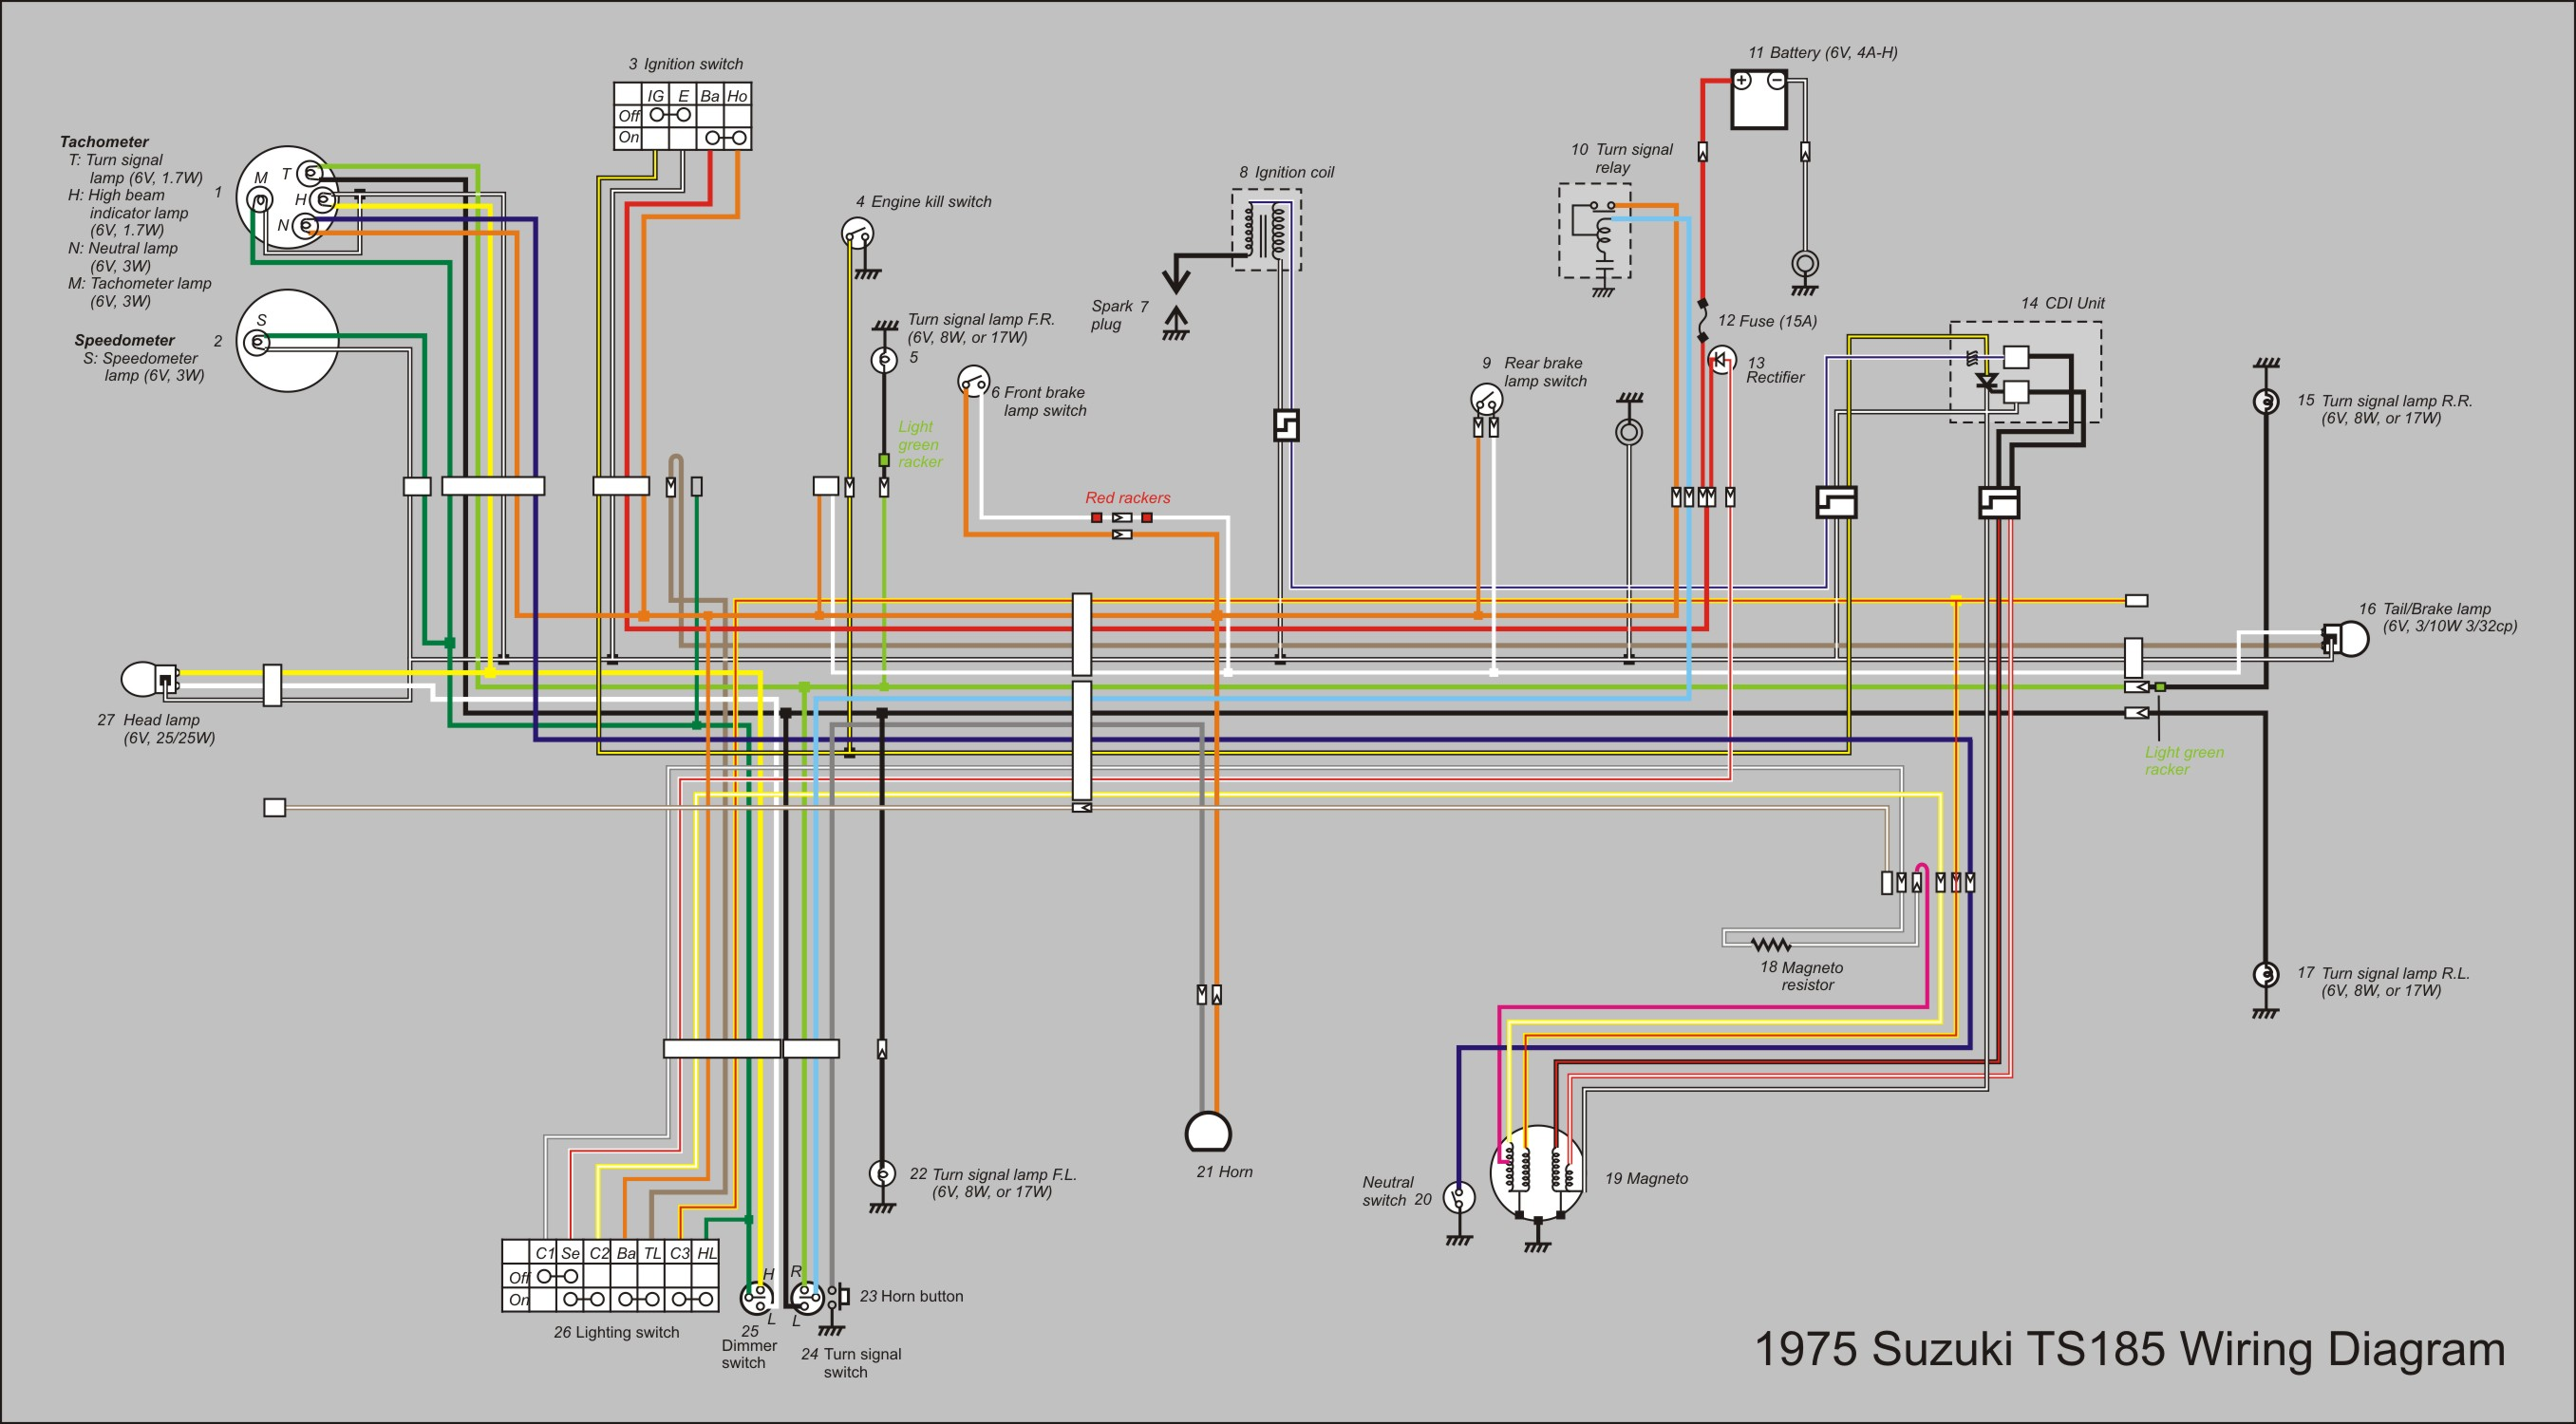 TS185_Wiring_Diagram_new file ts185 wiring diagram new jpg wikimedia commons suzuki ts185 wiring diagram at bayanpartner.co